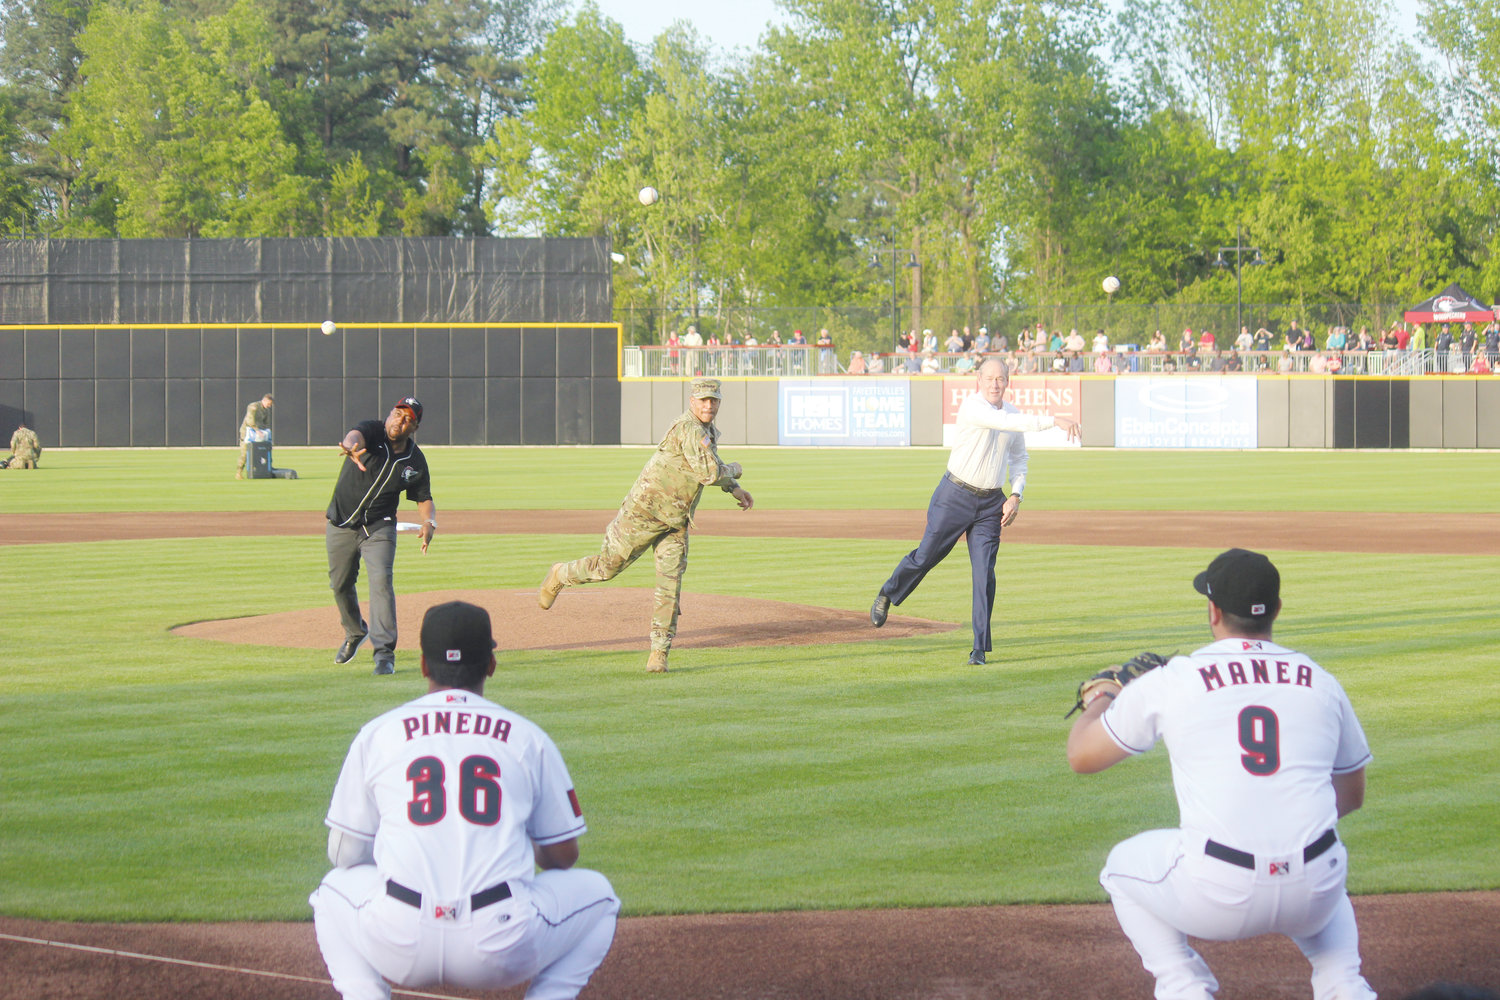 Fayetteville Mayor Mitch Colvin, Gen. Michael Garrett, commanding general of U.S. Army Forces Command and Houston Astros owner Jim Crane simultaneously throw out the opening pitch at the Fayetteville Woodpeckers' home opener Thursday.